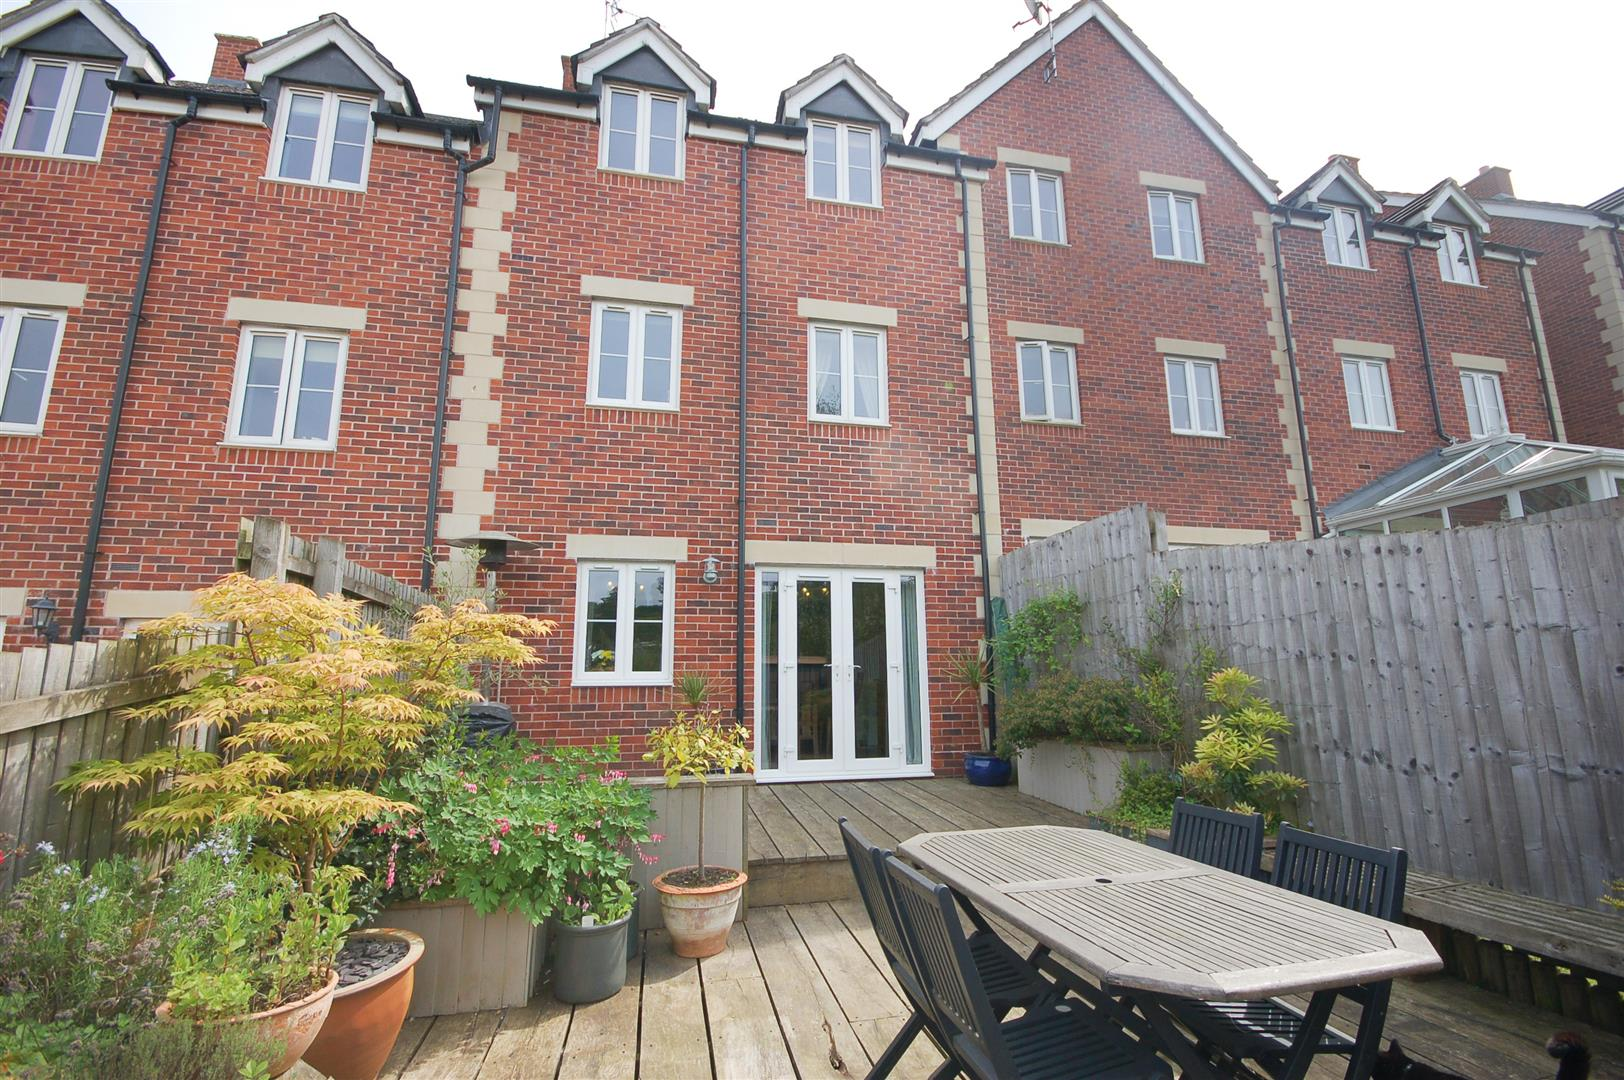 4 bedroom mid terrace house for sale